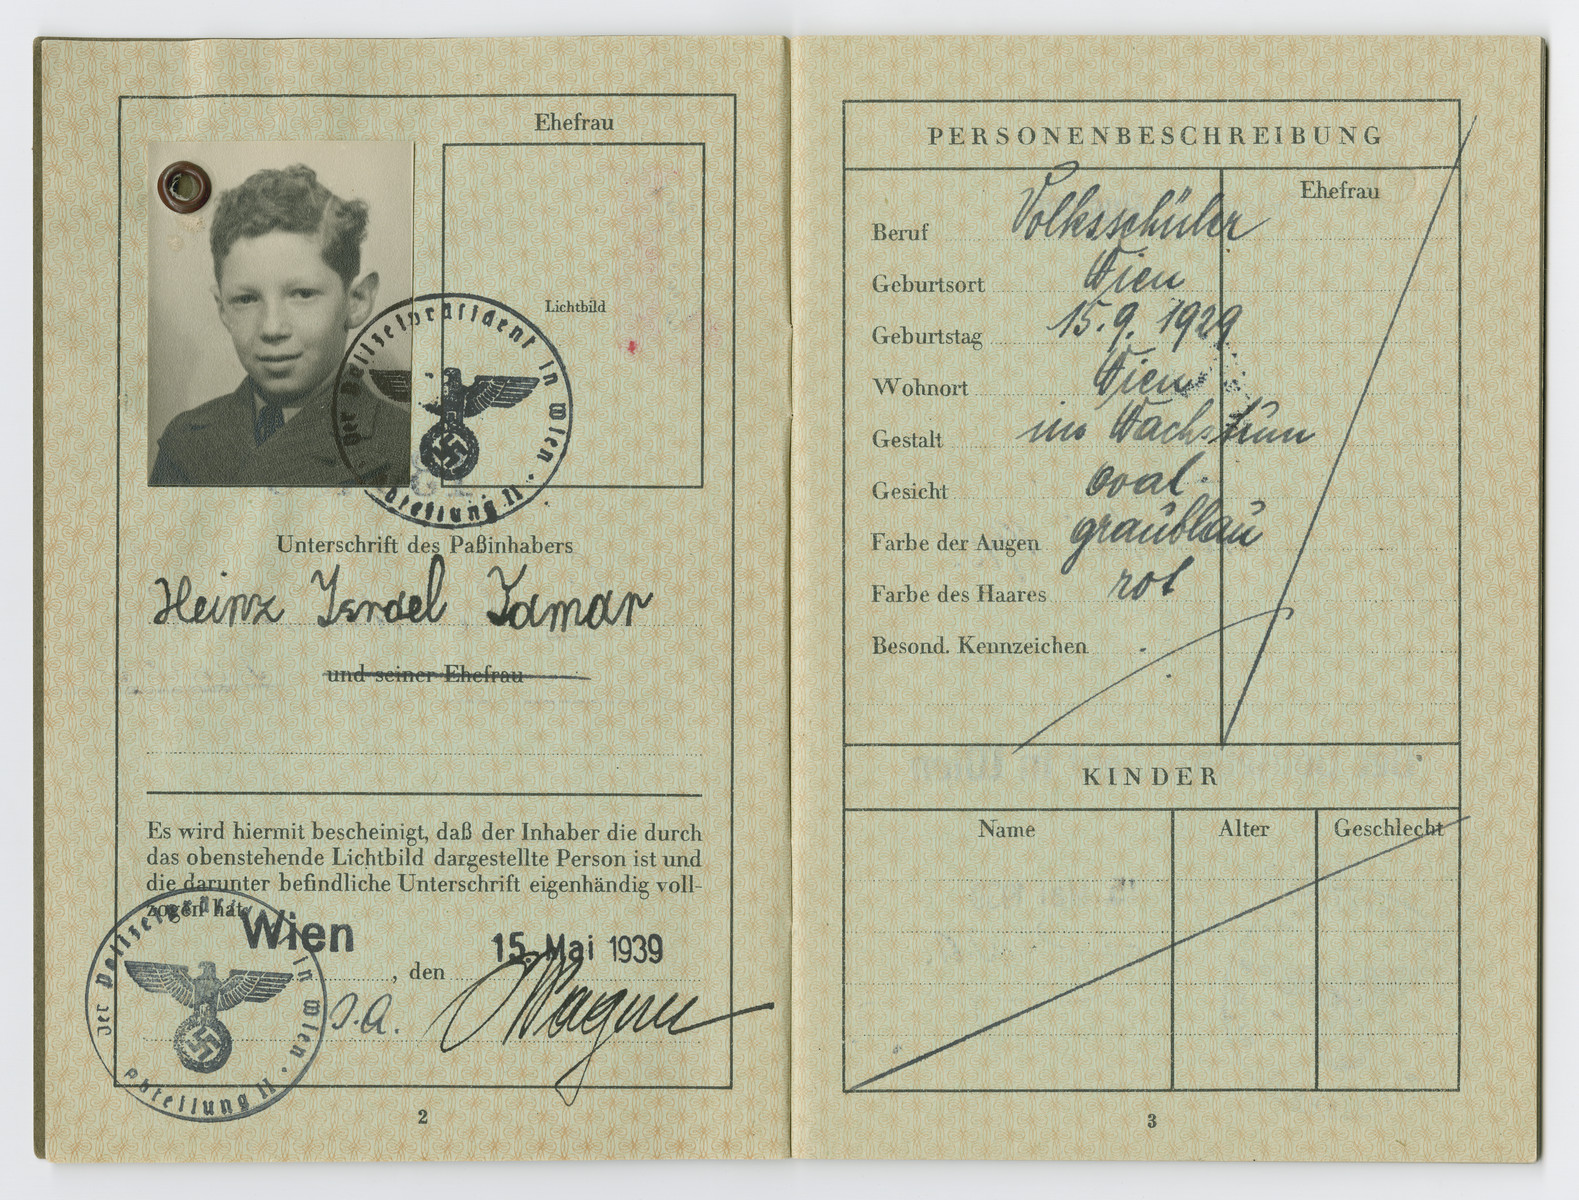 Identification papers issued to Heinz Israel Tamar born September 15, 1929.  Israel was not his real middle name, but on August 17, 1938 Nazi officials ordered that all Jewish men assume the middle name Israel, and all Jewish women take the middle name Sara